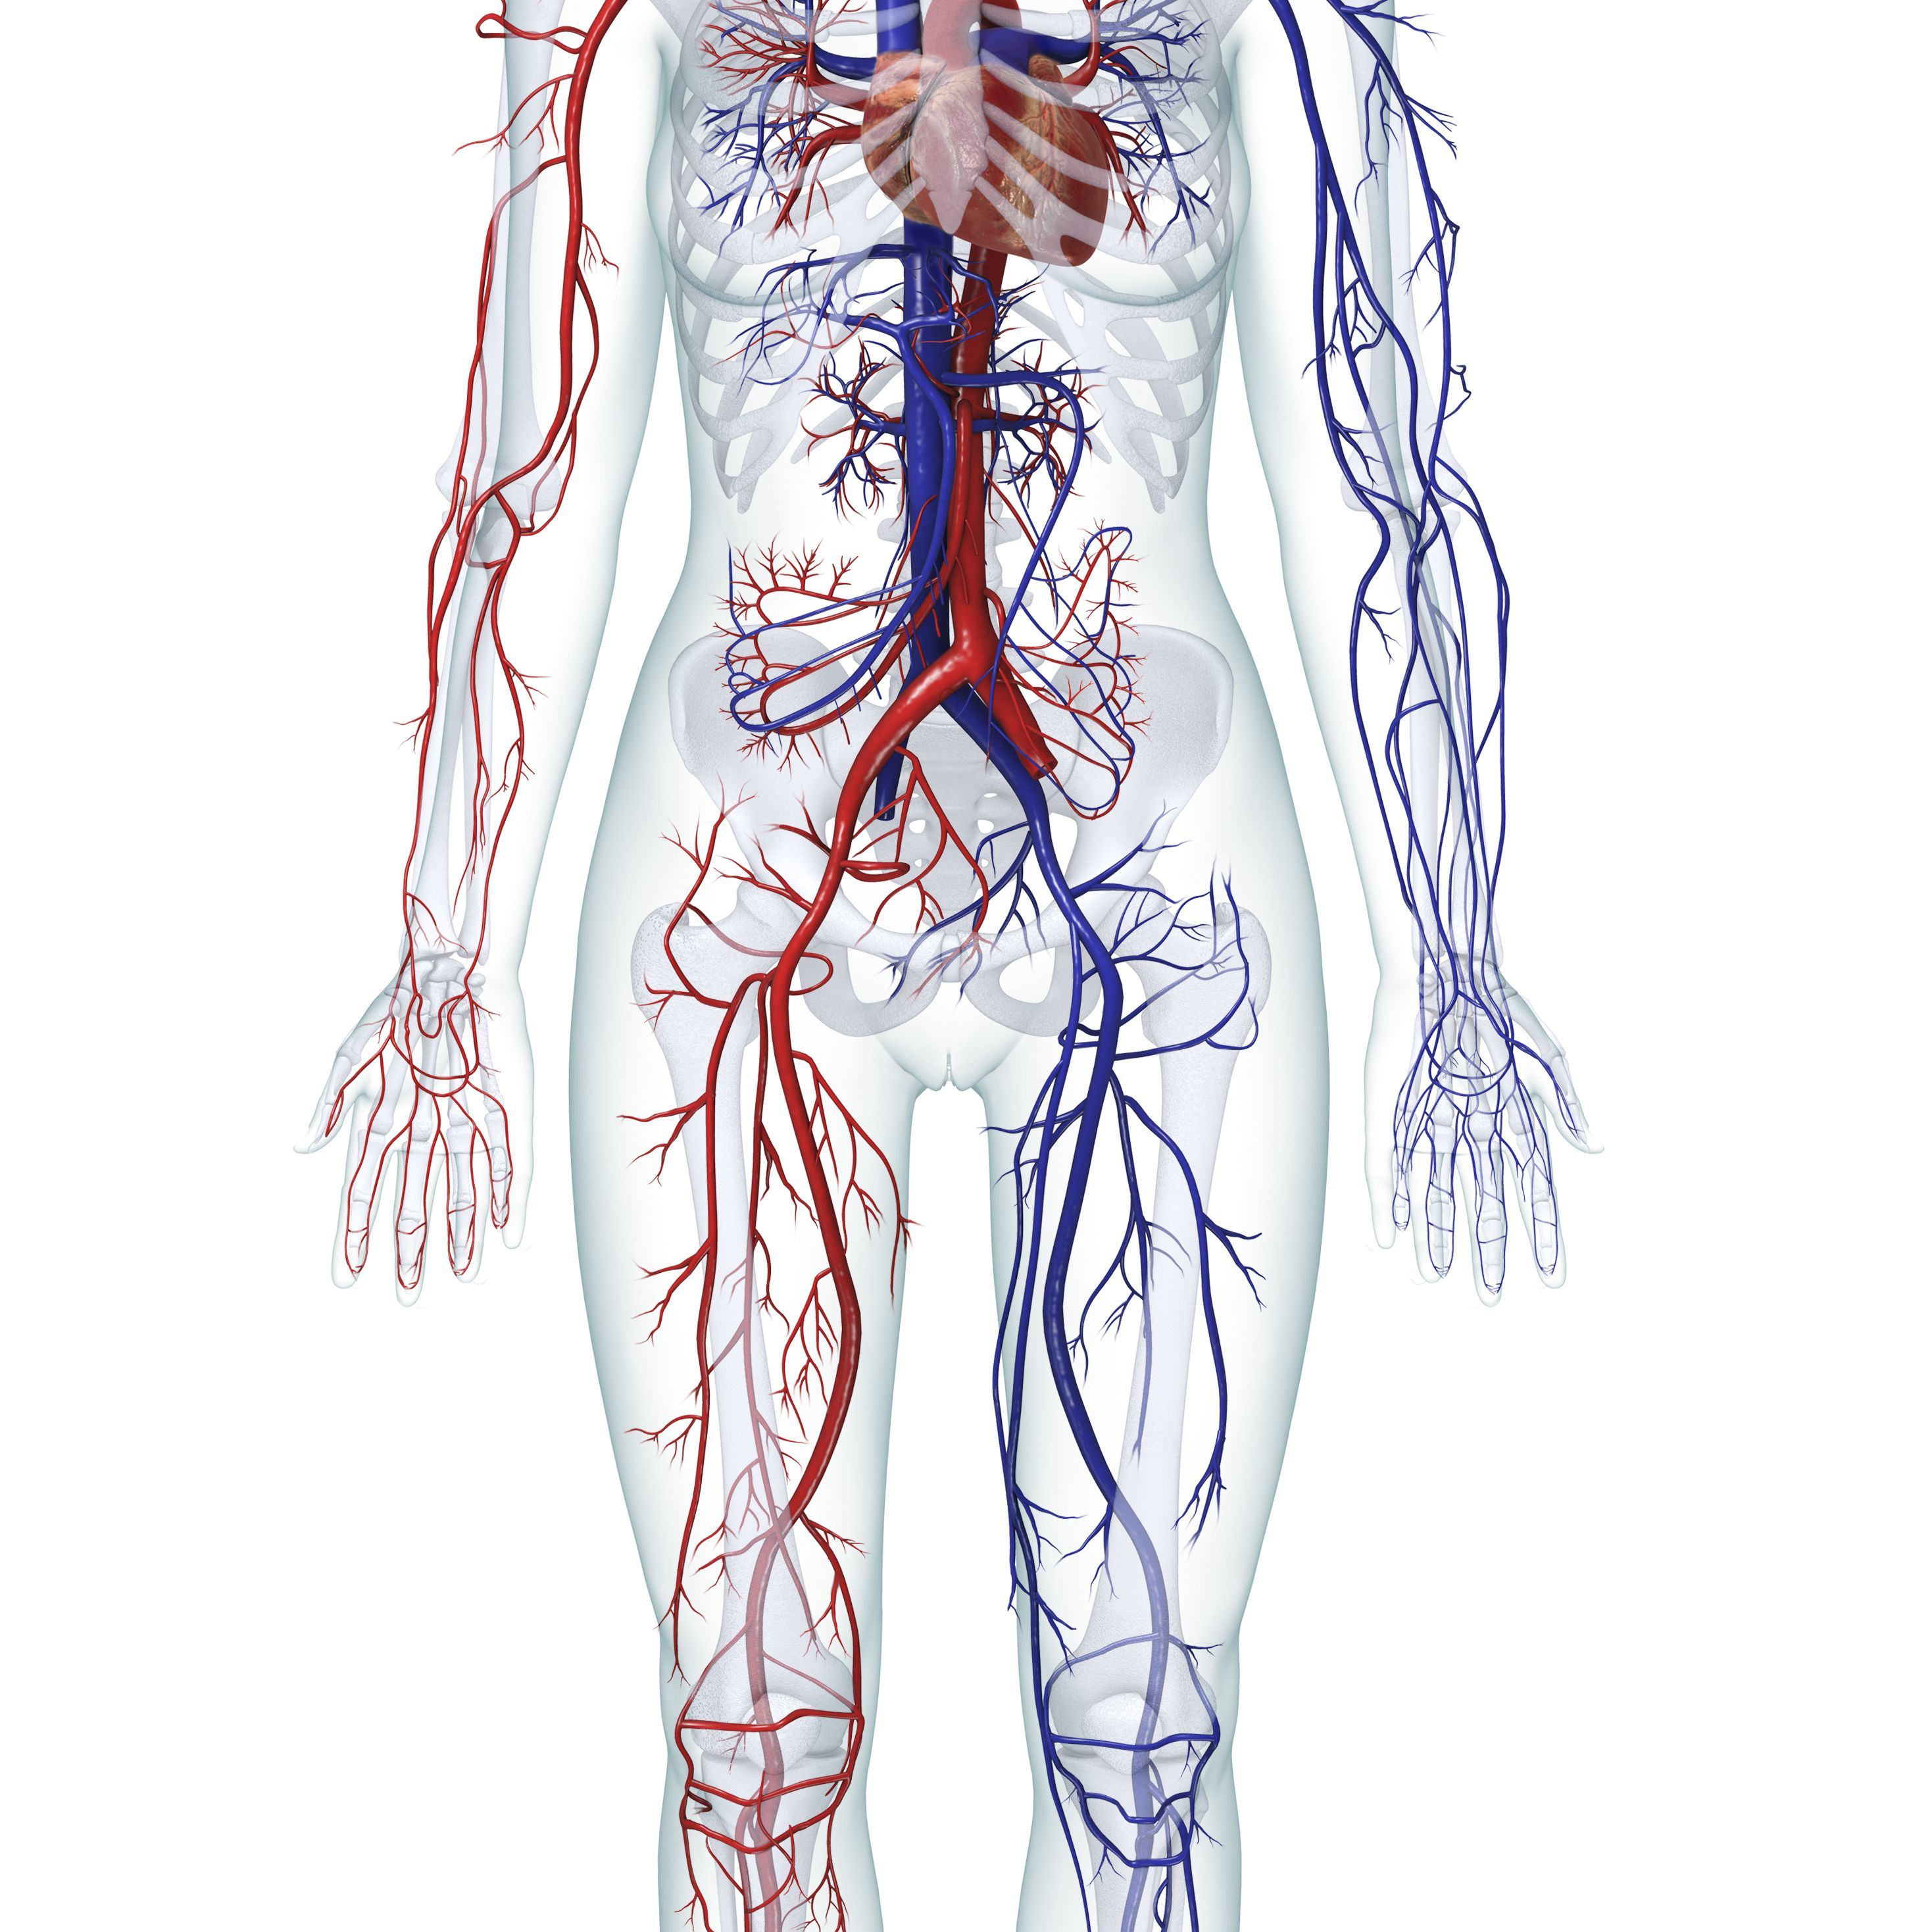 Diagram Of Human Body Organs Learn About The Organ Systems In The Human Body